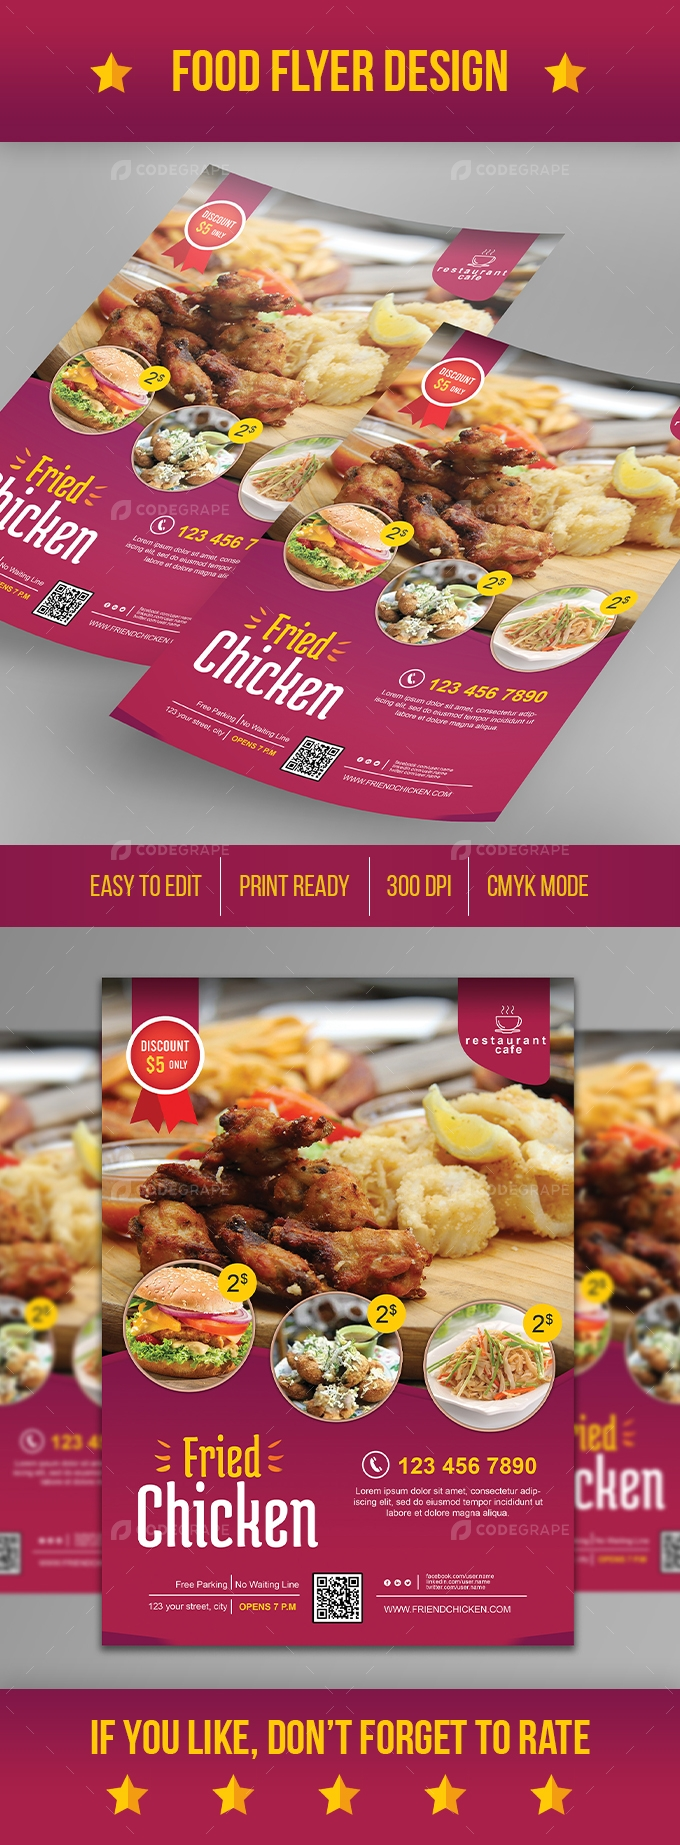 Modern Food Flyer Template - 02